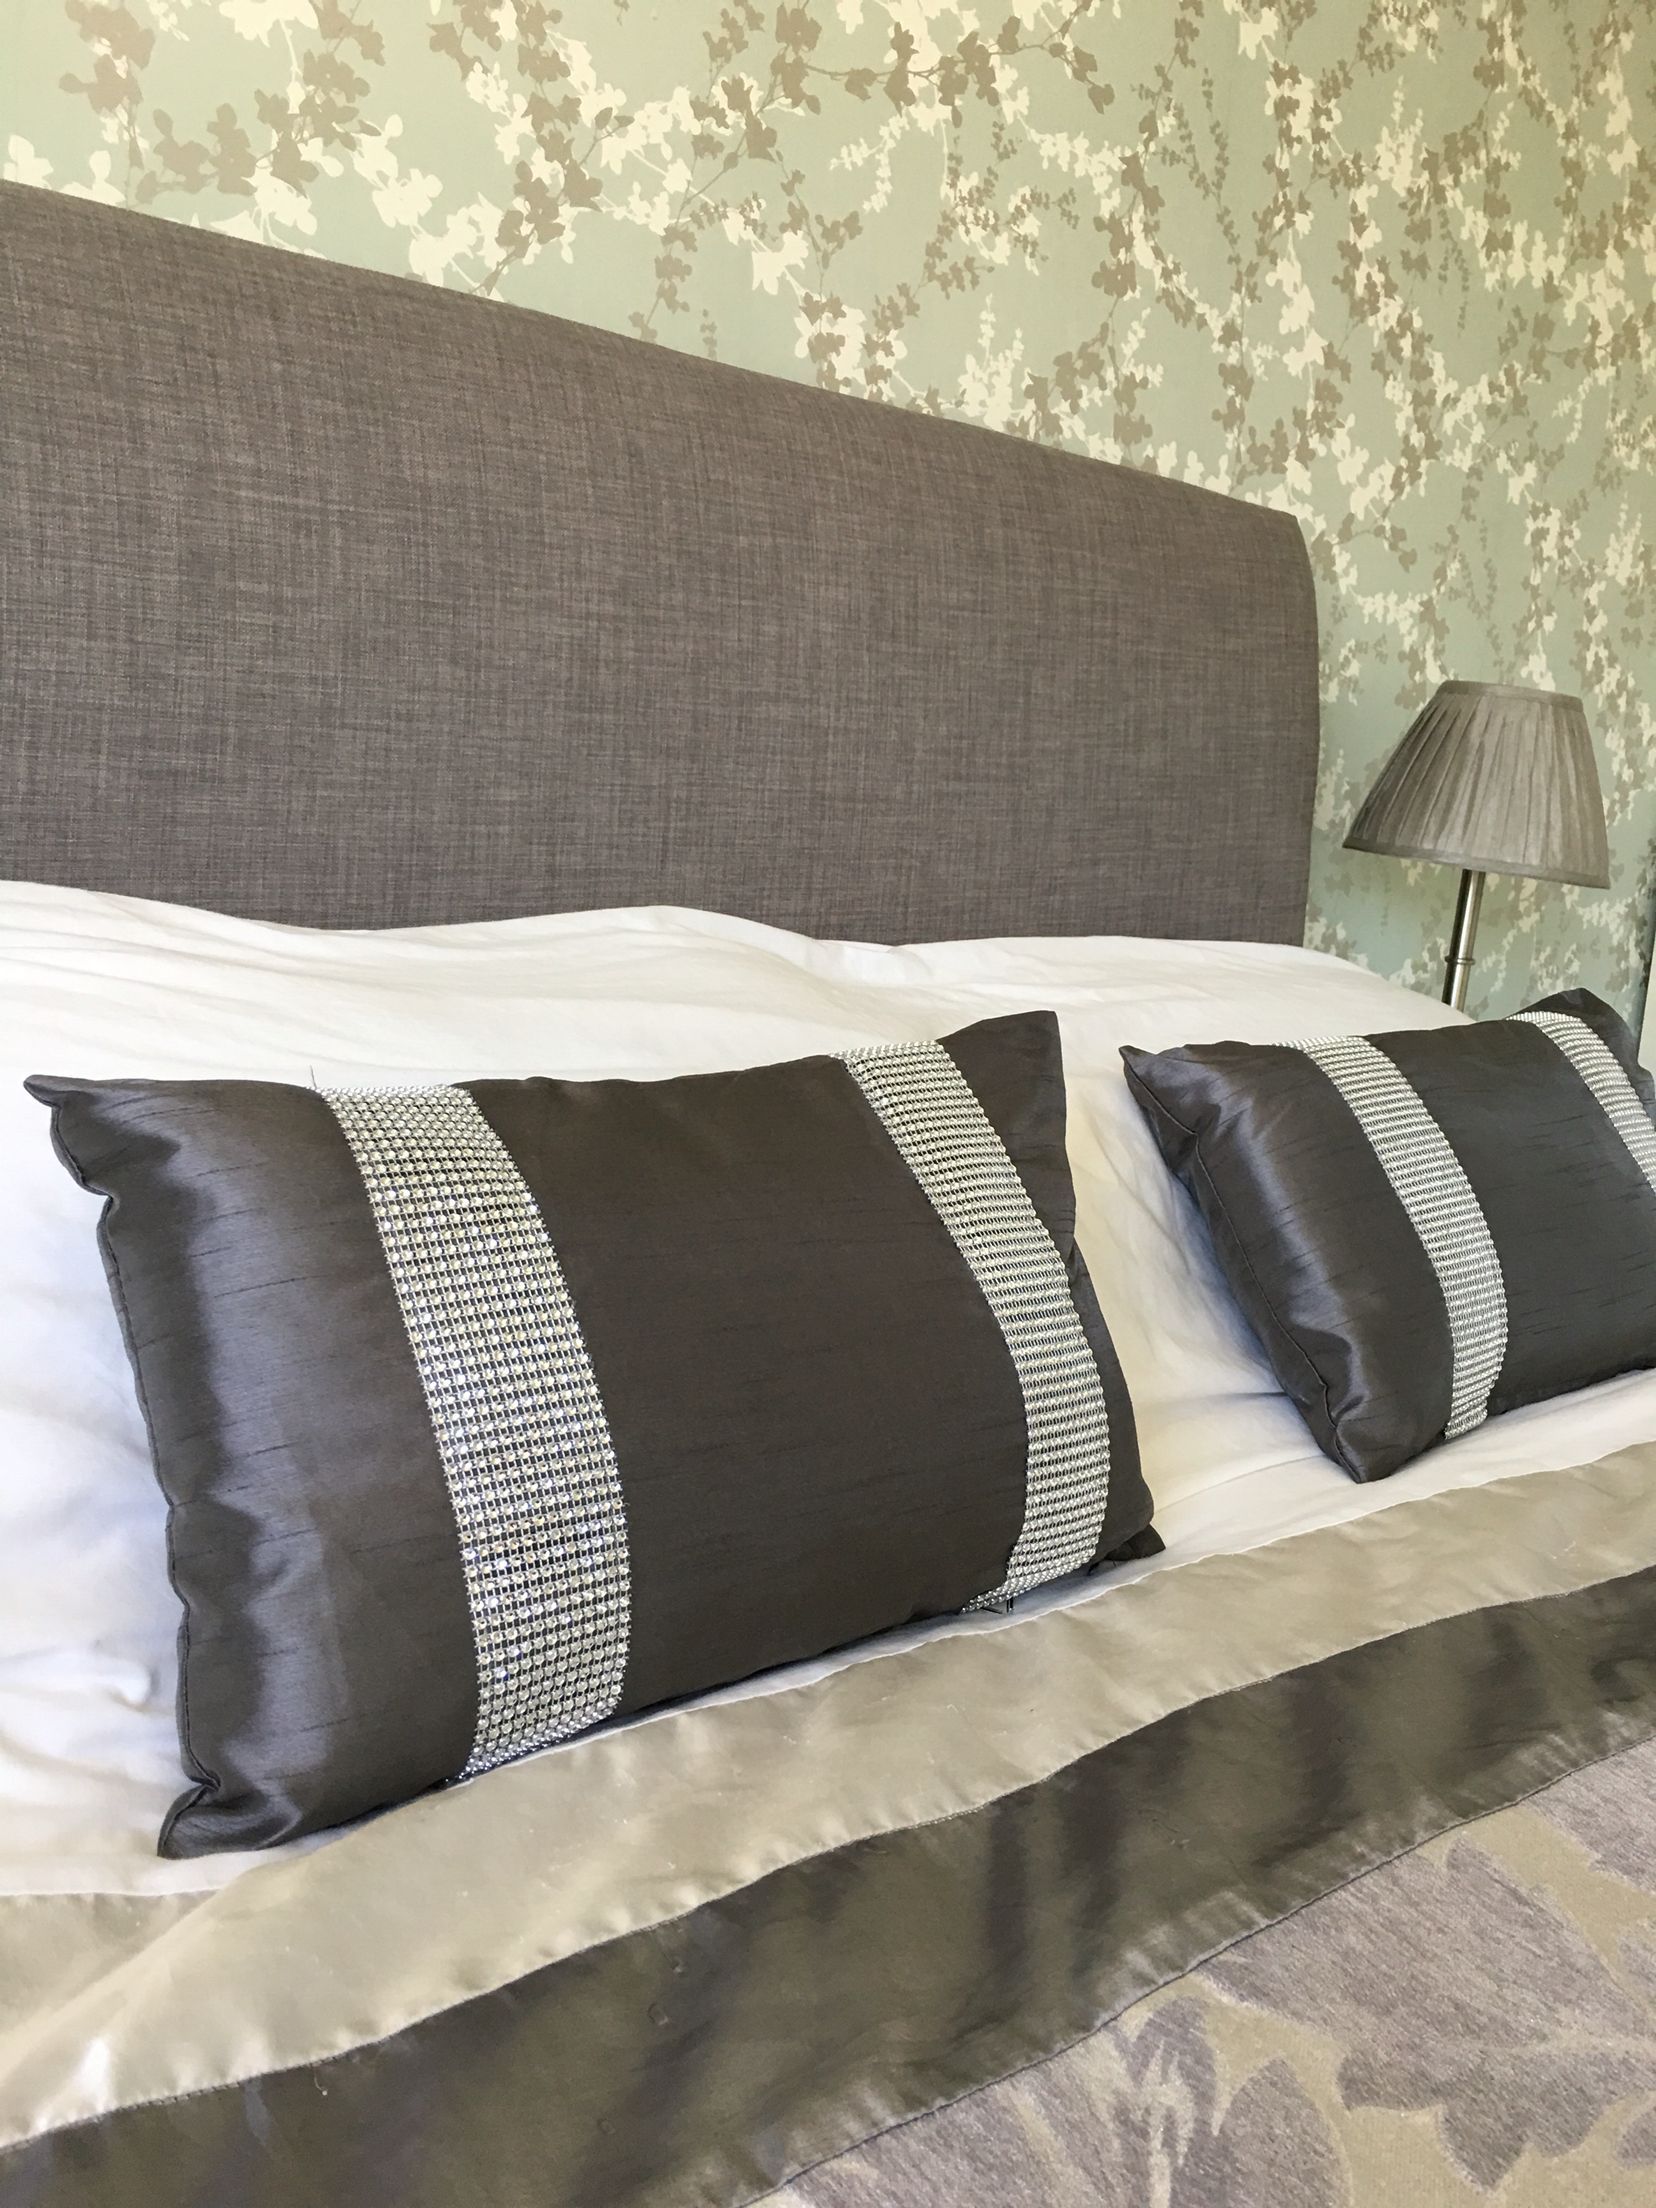 Recovered Old Leather Headboard With New Fabric Bedroom